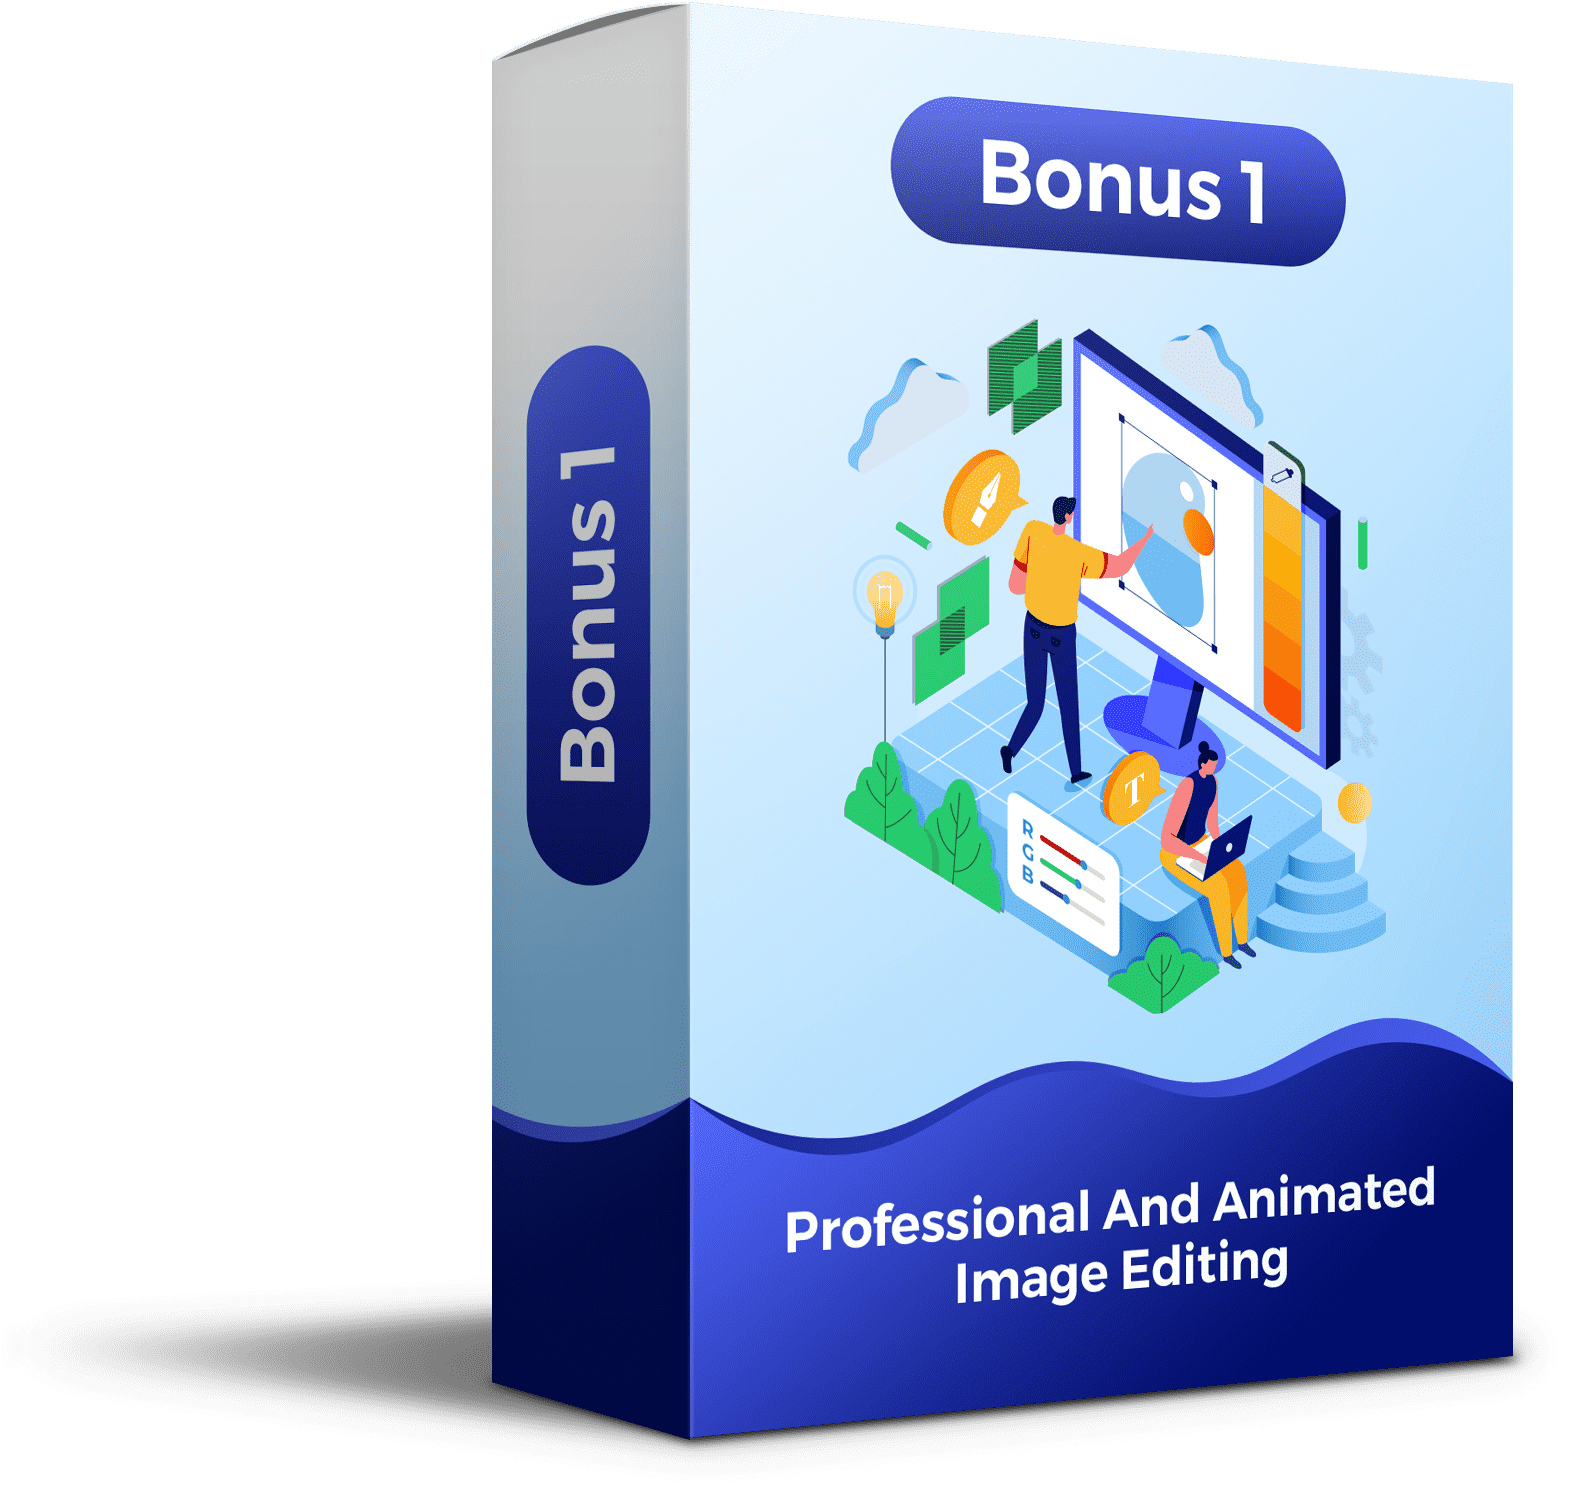 Professional And Animated Image Editing